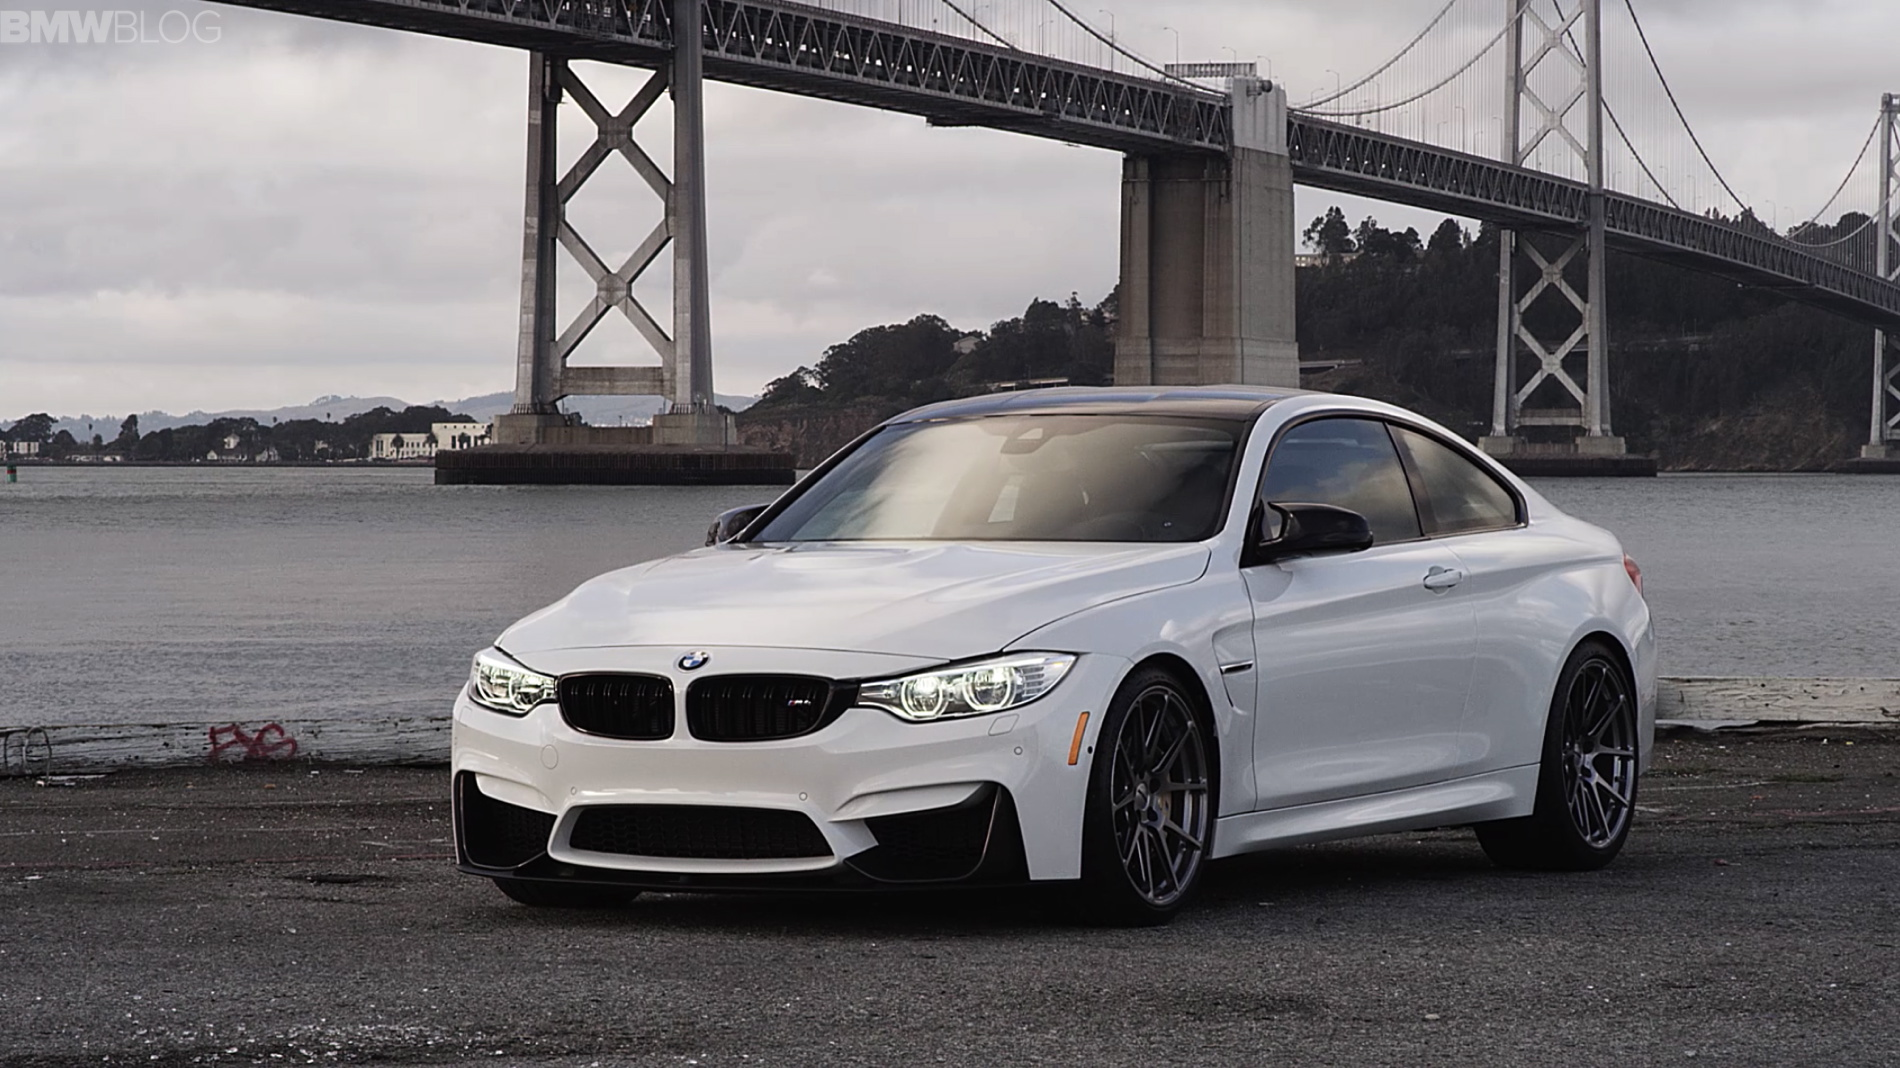 Dinan Club Edition BMW M4 Coupe - New Video